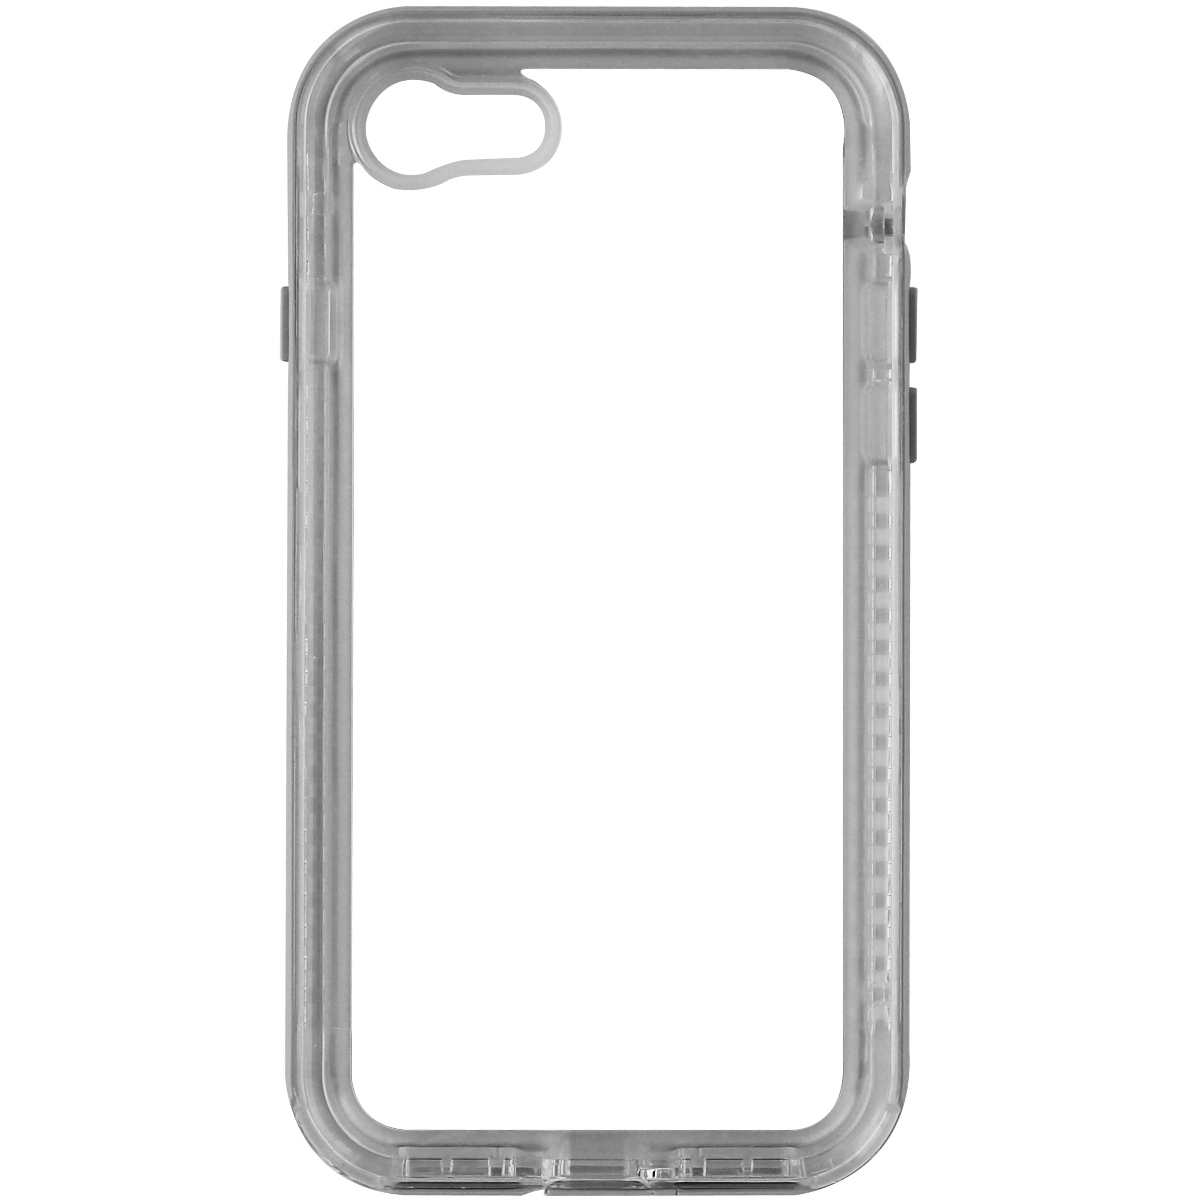 LifeProof NEXT Series Protective Case for Apple iPhone 8 / 7 - Clear/Gray